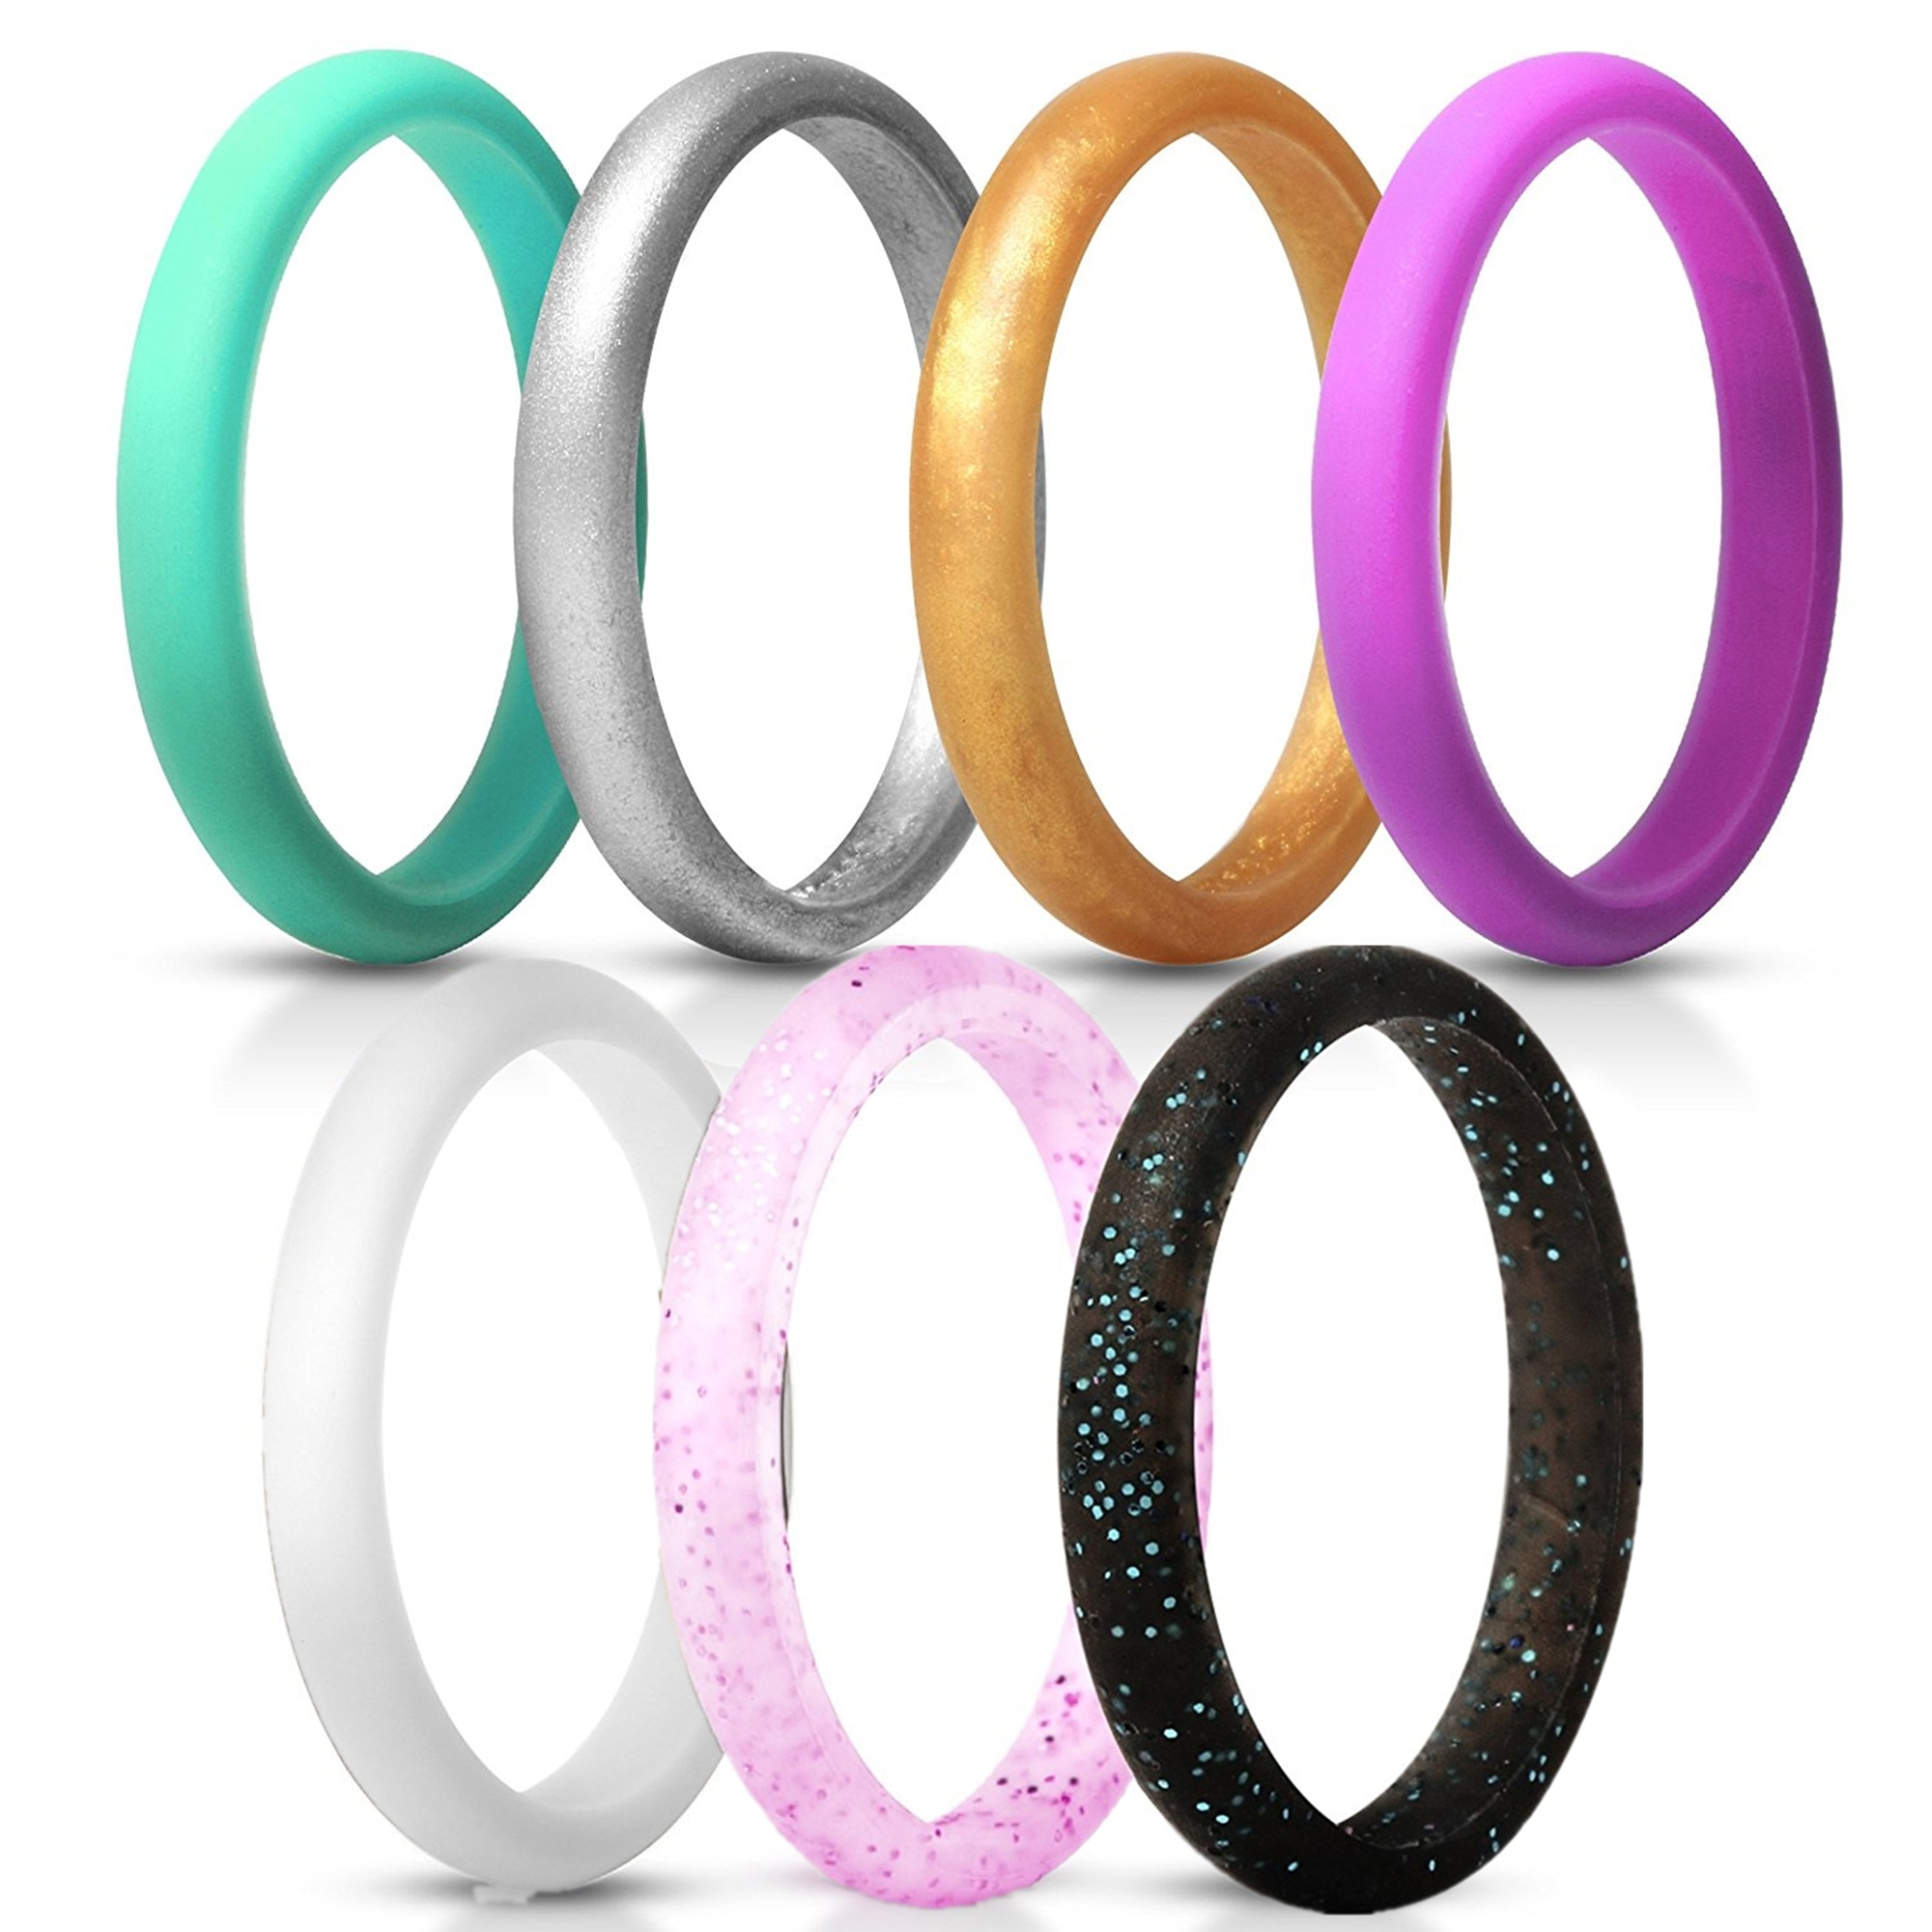 Moretek Silicone Wedding Rings For Men,Silicone Wedding Bands ,7 Rings Pack,Comfortable fit,No-toxic,Skin Safe,Including Colored Styles